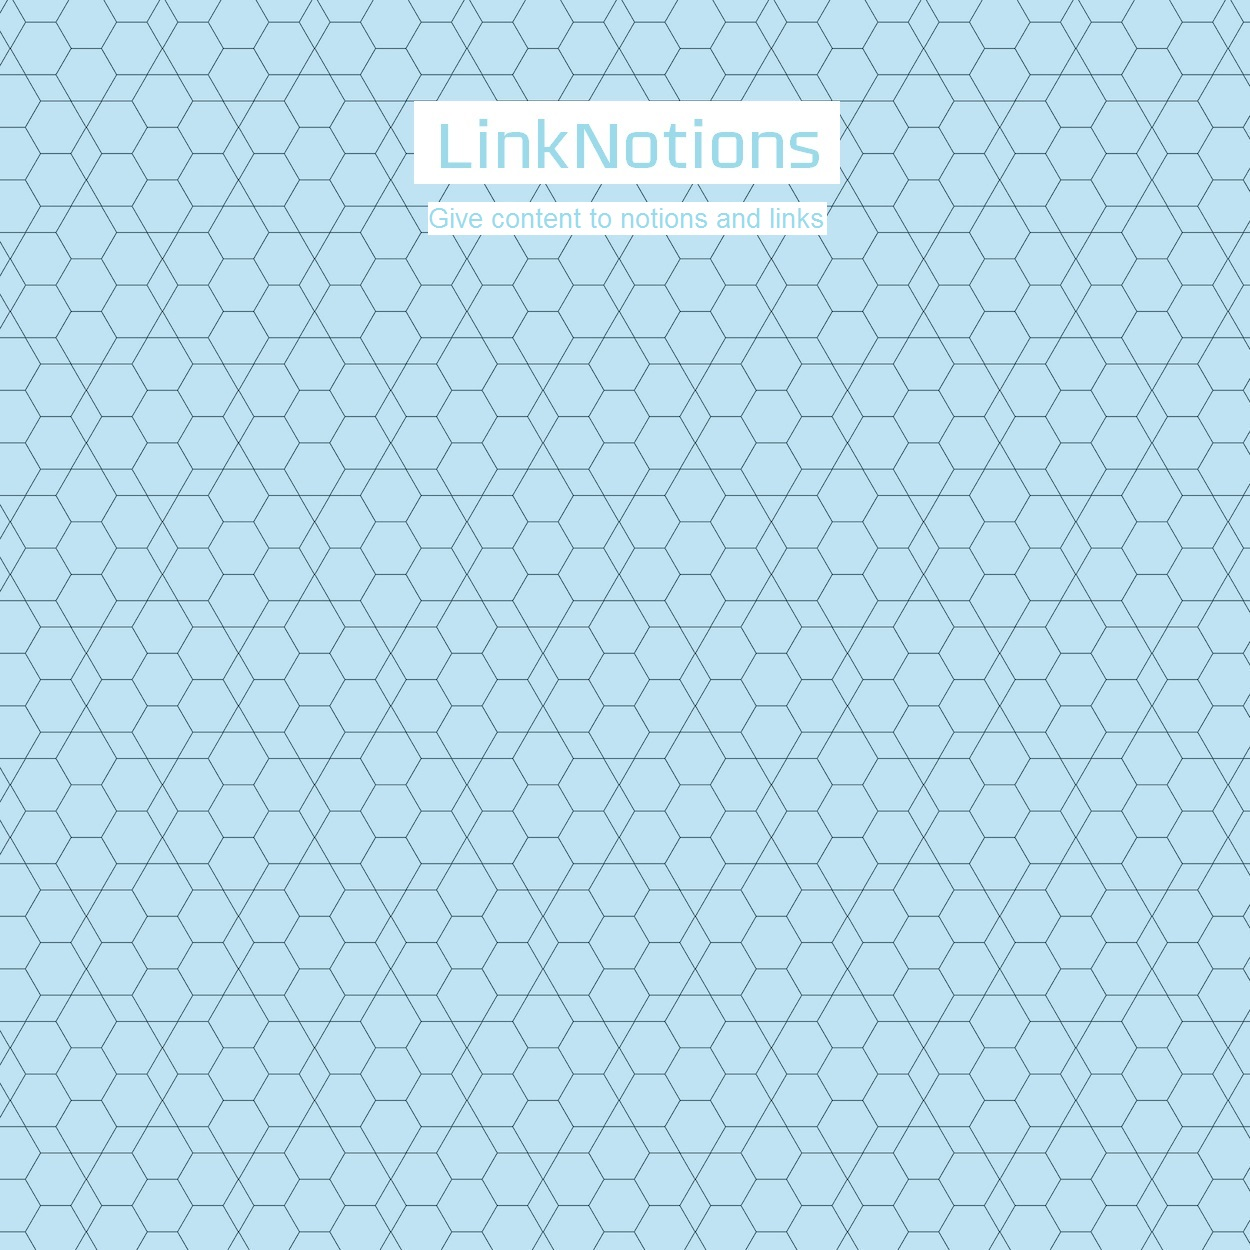 LN-titre-6-Give-content-to-notions-and-links